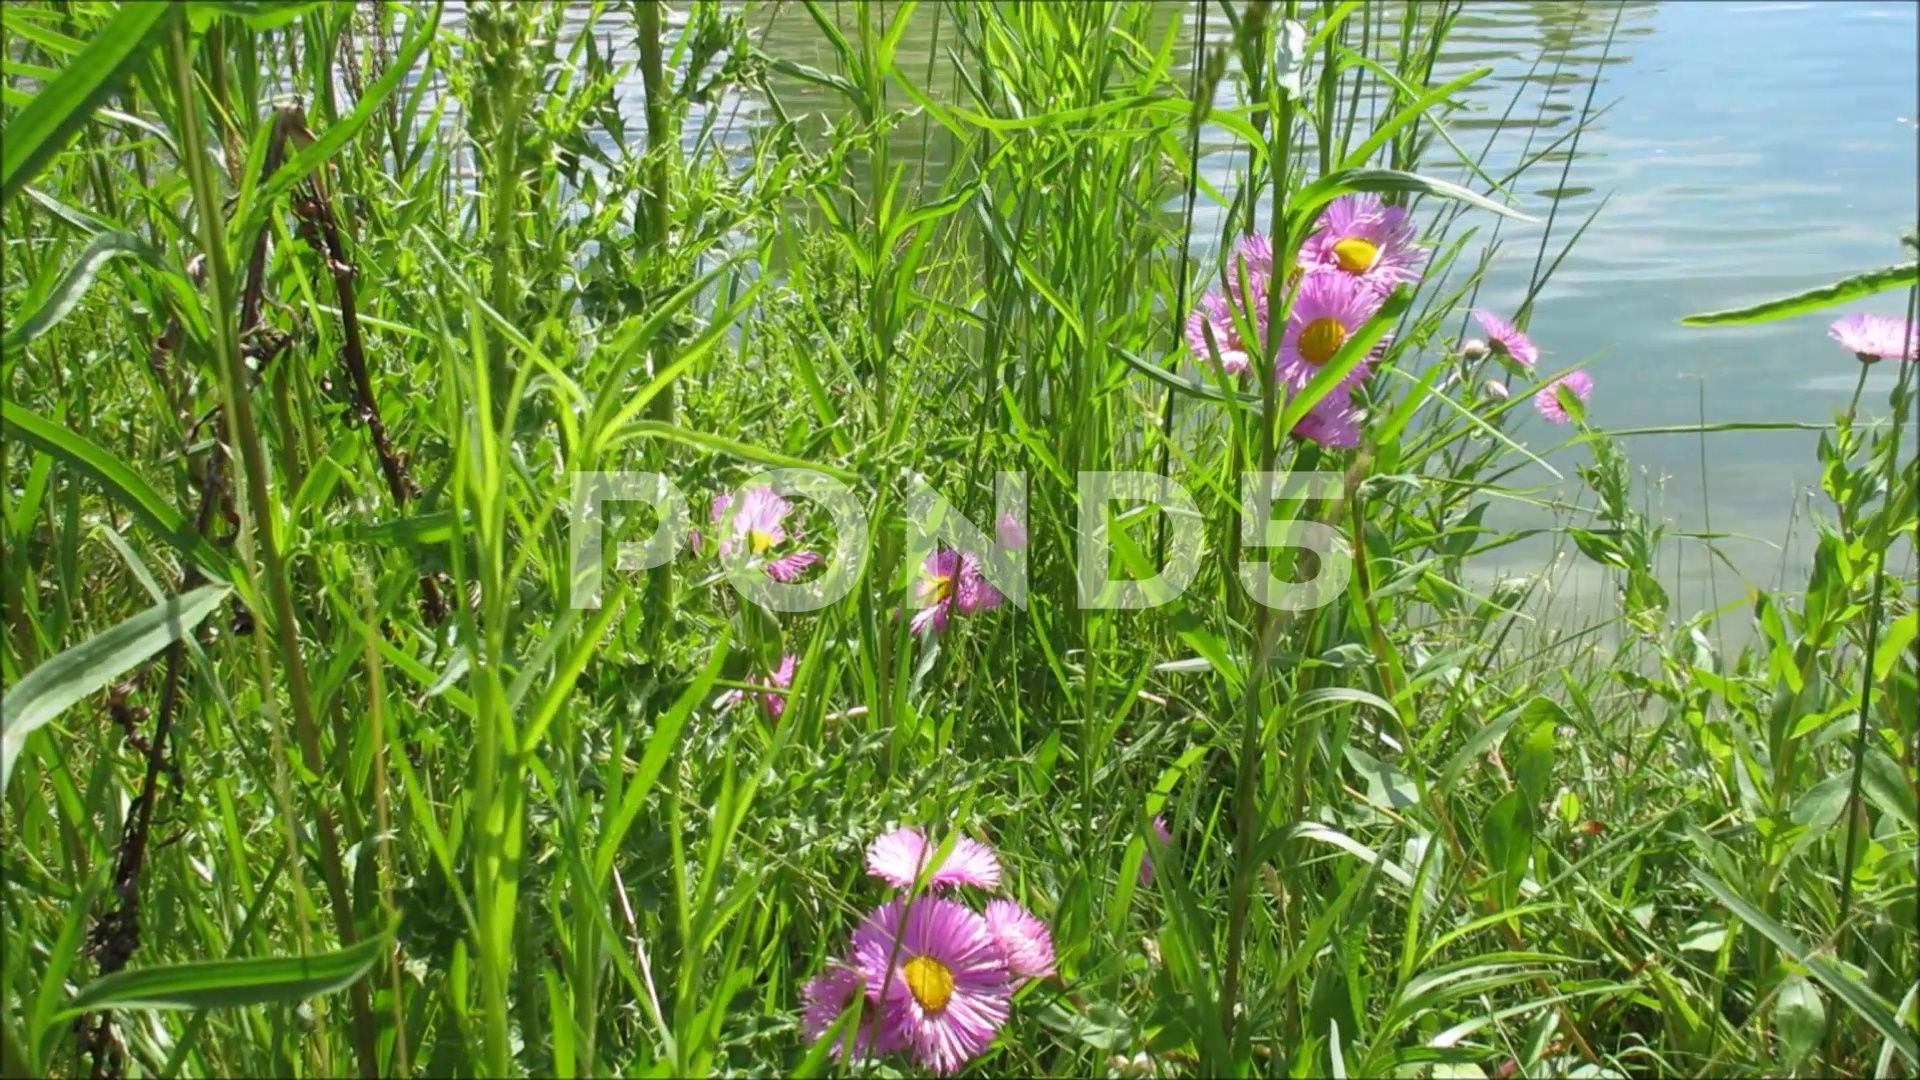 Green Plants And Pink Flowers Swaying By The Lake Beautiful Nature Stock Footage Ad Flowers Swaying Pink Green Beautiful Nature Green Plants Plants